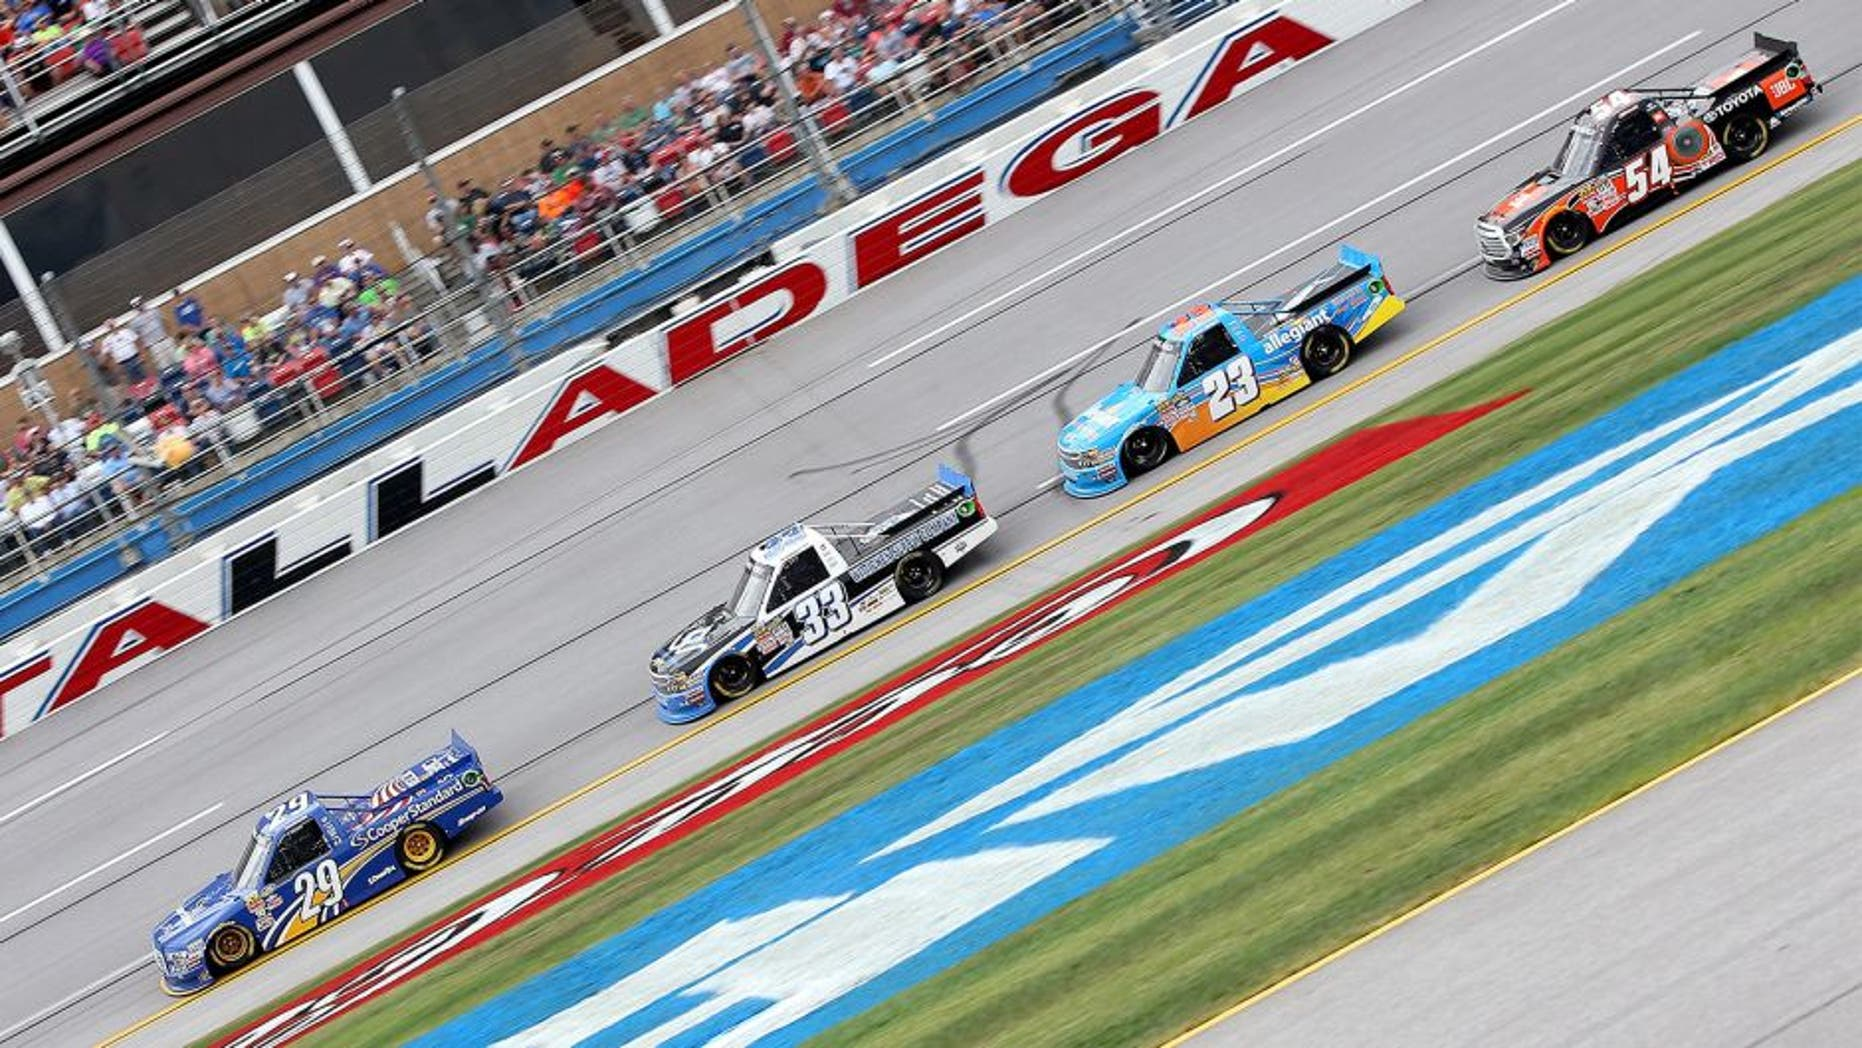 TALLADEGA, AL - OCTOBER 24: Brian Keselowski, driver of the #29 Cooper Standard Ford, leads a pack of trucks during the NASCAR Camping World Truck Series fred's 250 at Talladega Superspeedway on October 24, 2015 in Talladega, Alabama. (Photo by Sean Gardner/NASCAR via Getty Images)